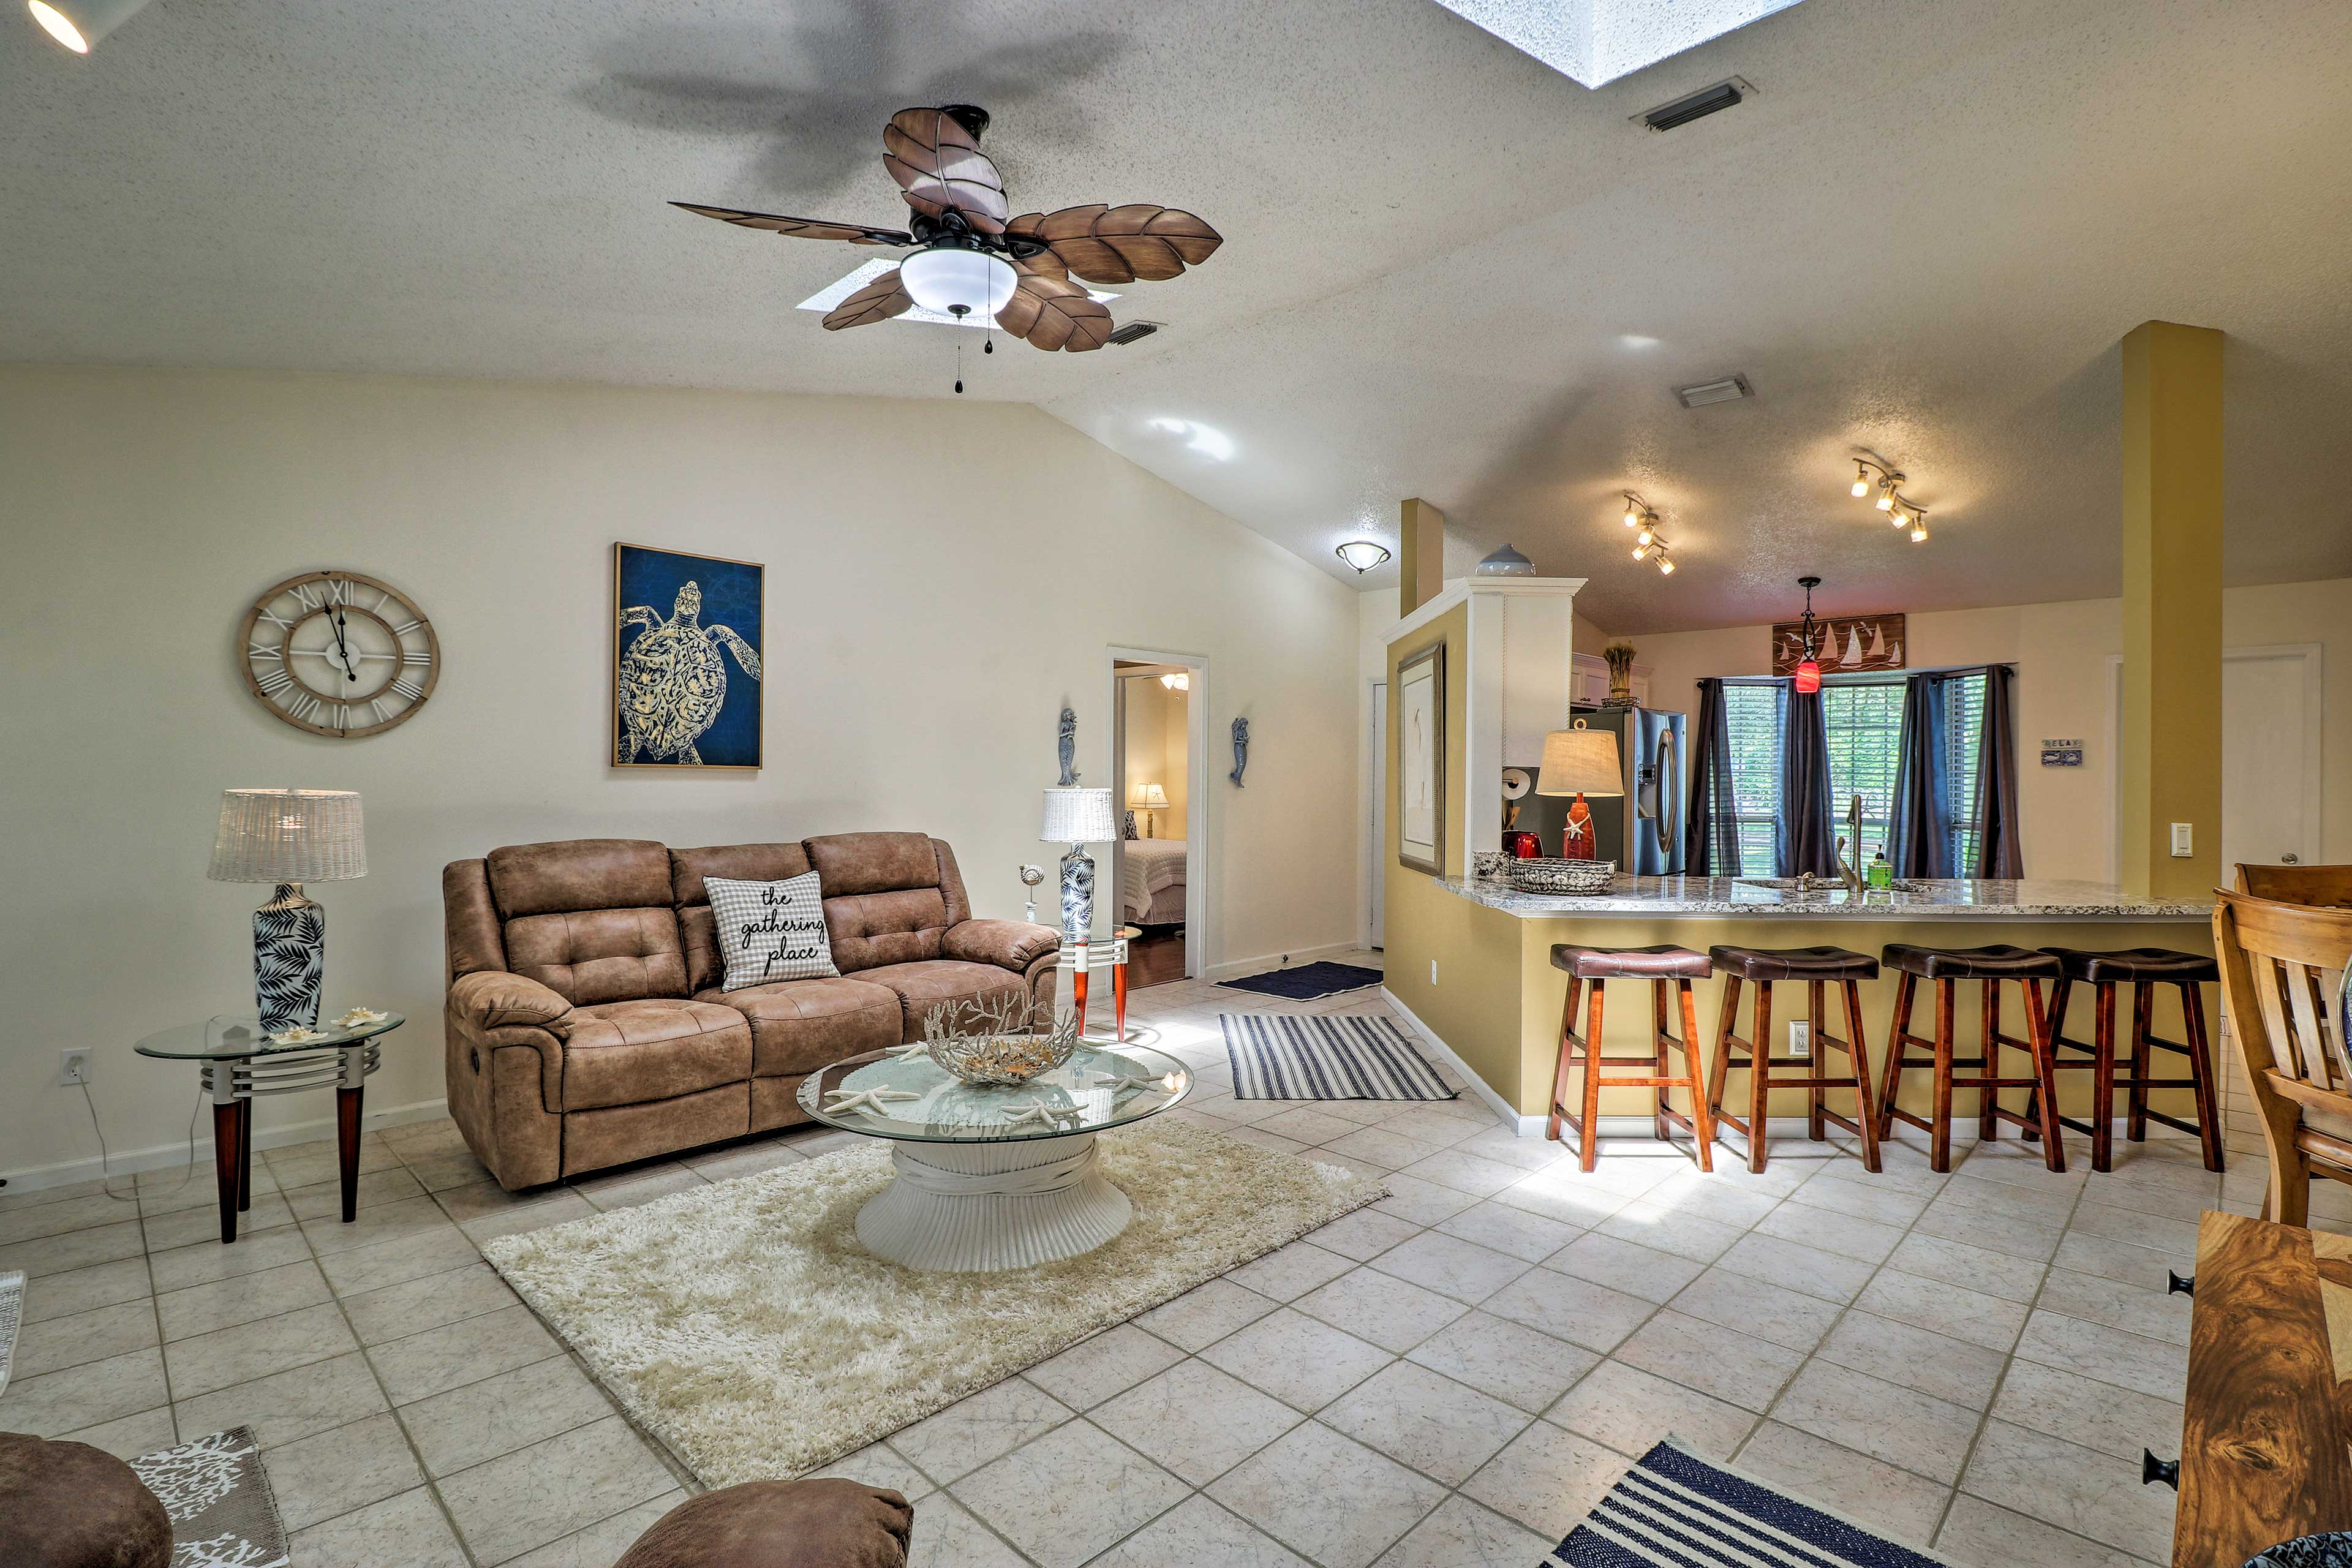 With cathedral ceilings, the living room is spacious and bright.